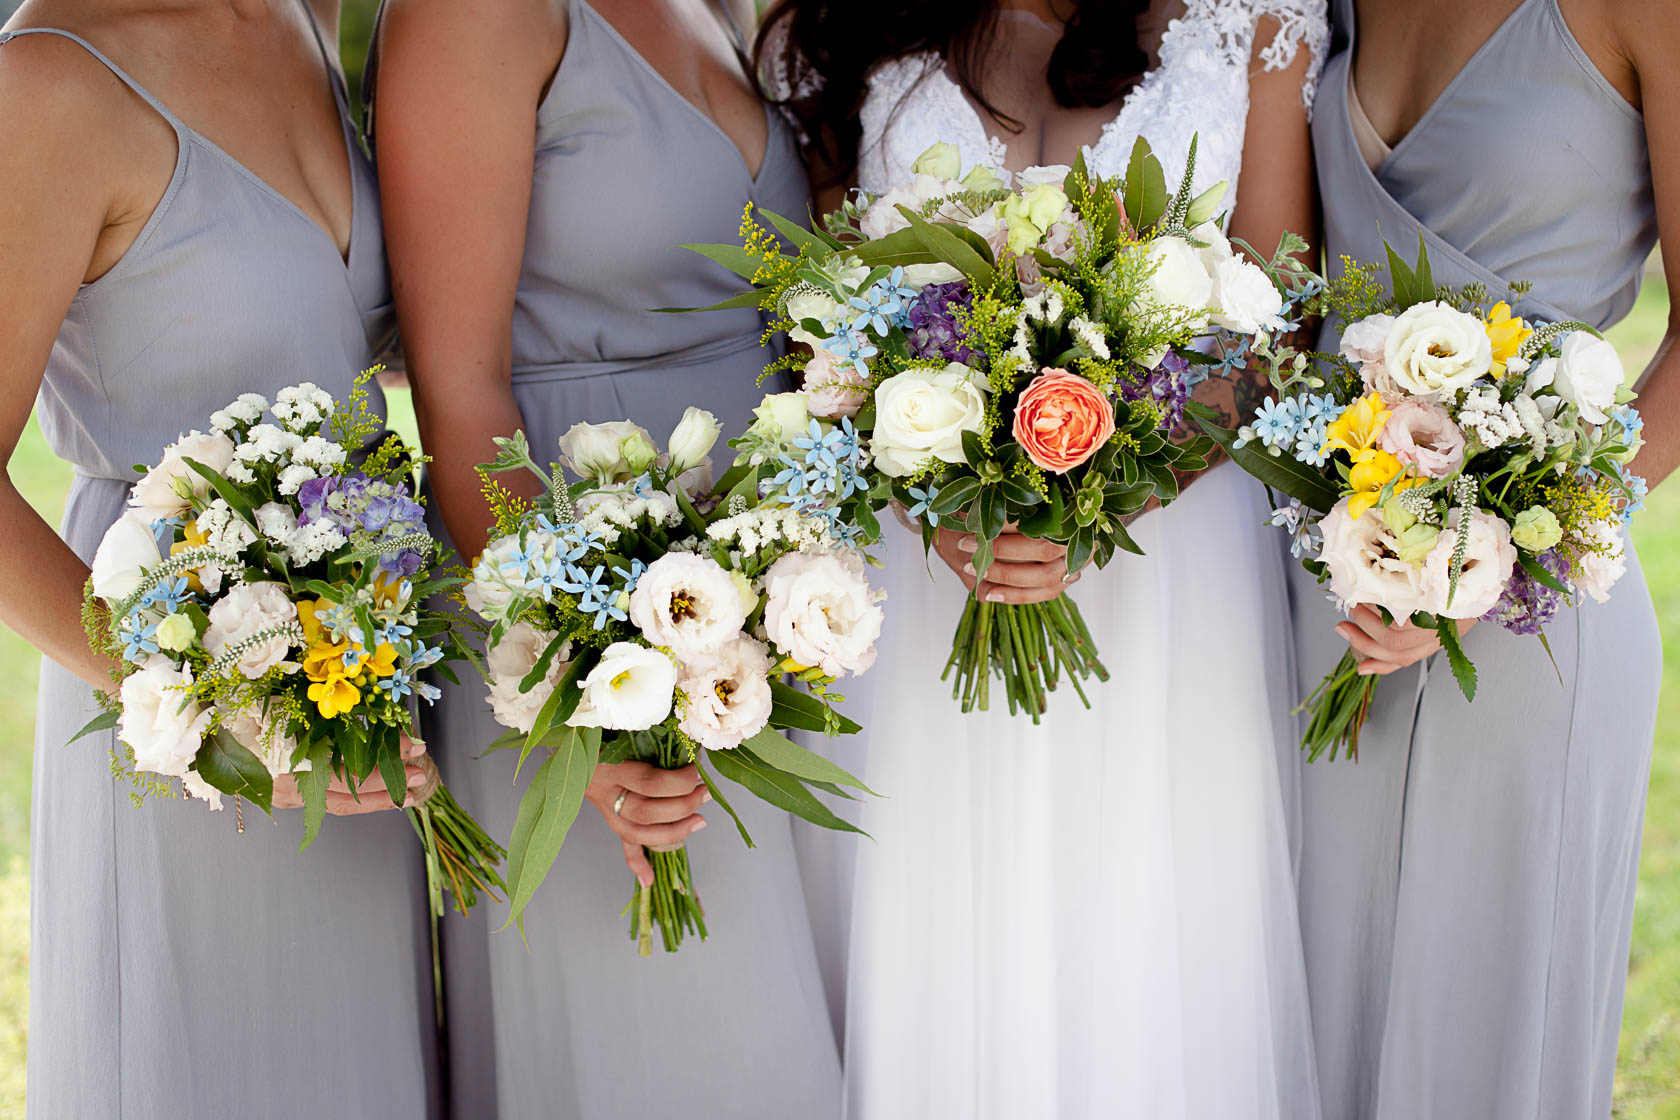 Bridesmaids and bride with close up of flowers